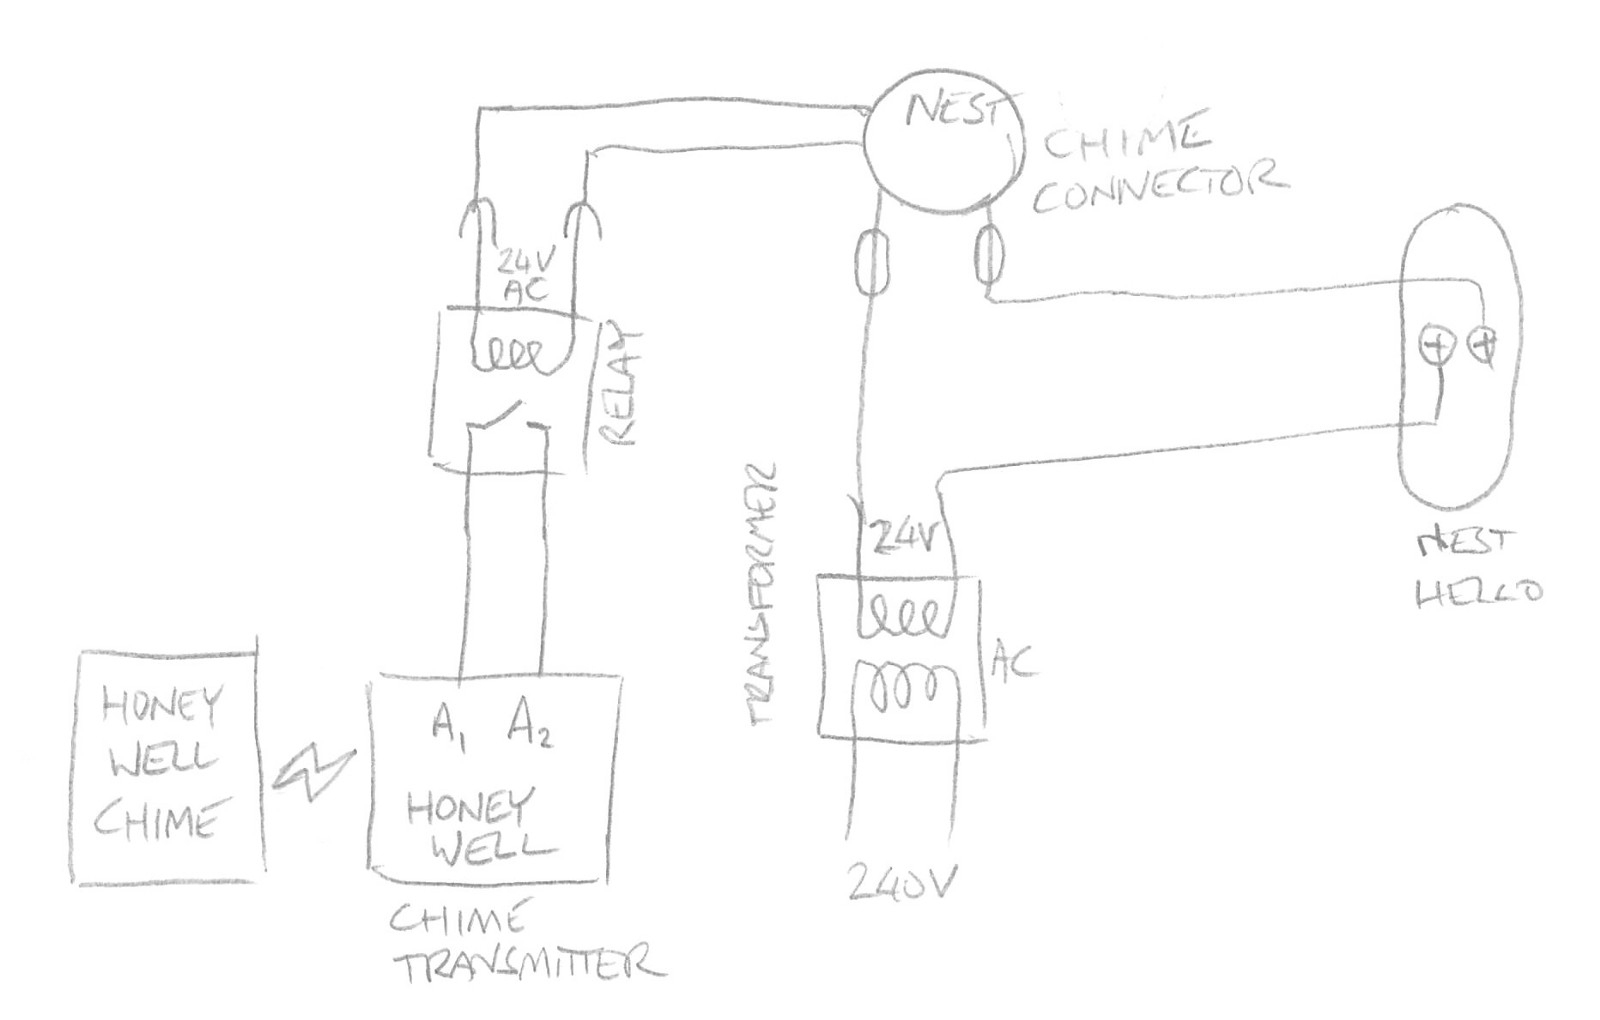 Nest Internal Wiring Diagram